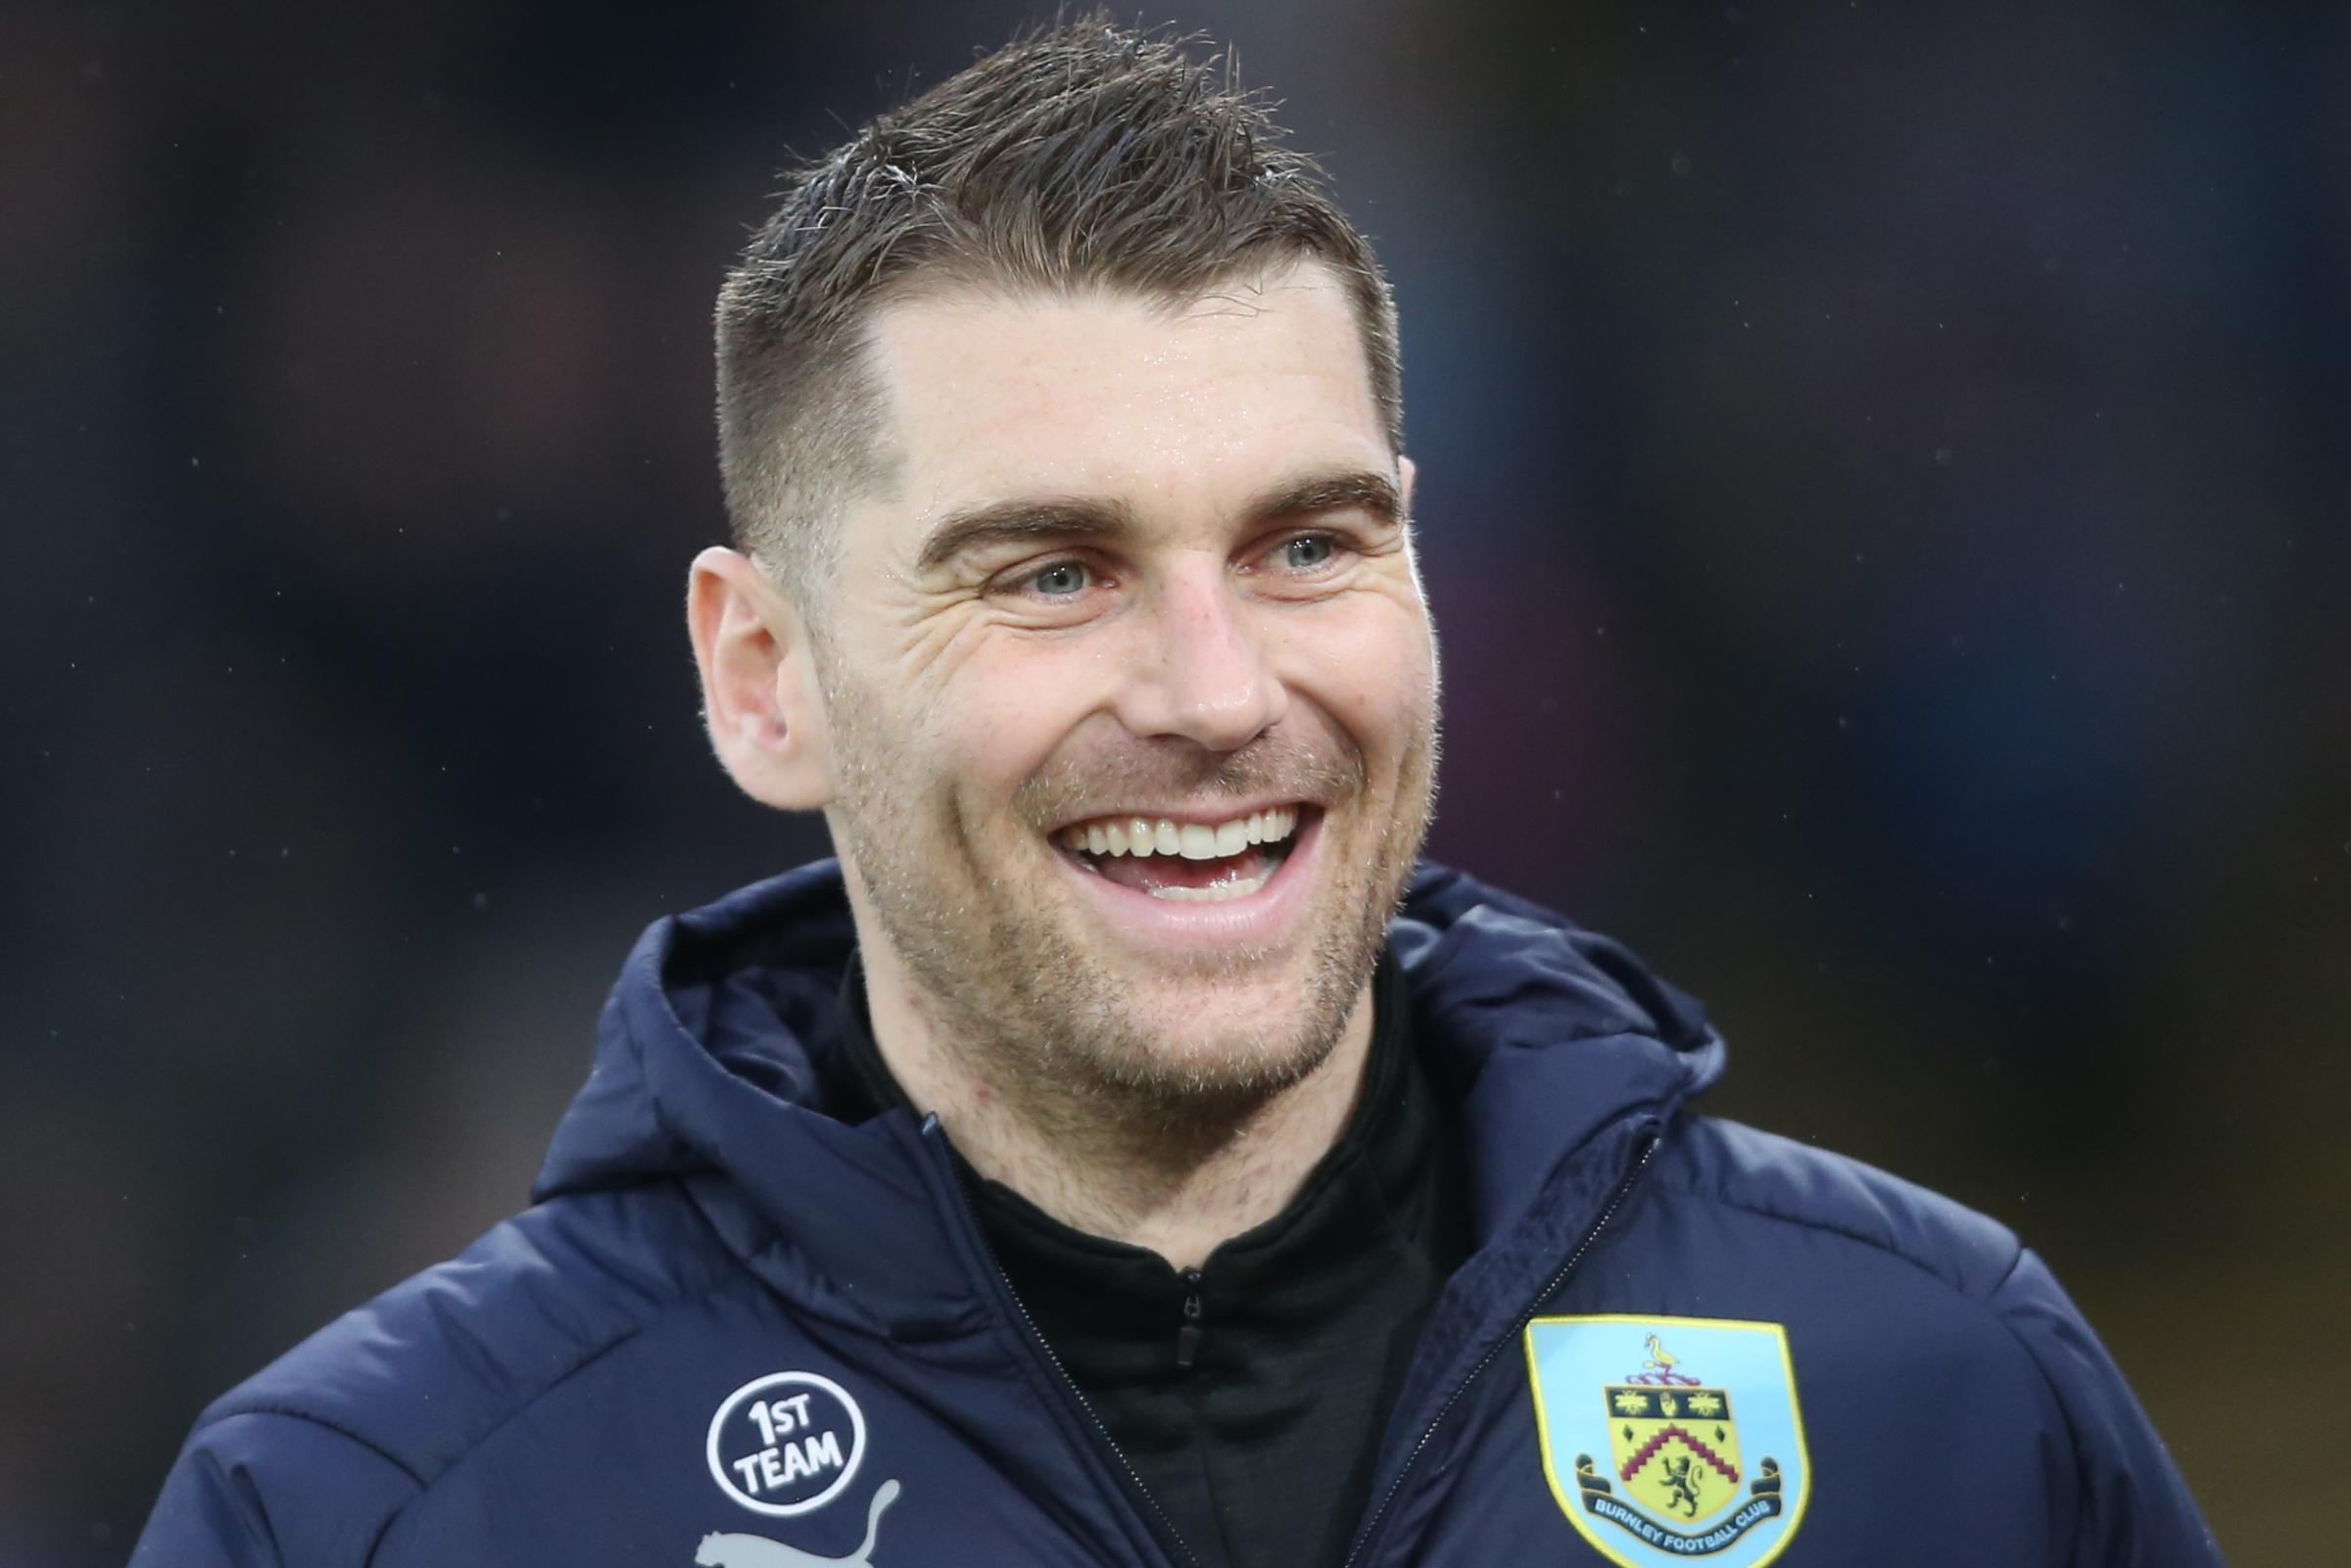 Sam Vokes on the impact Sean Dyche made on his career